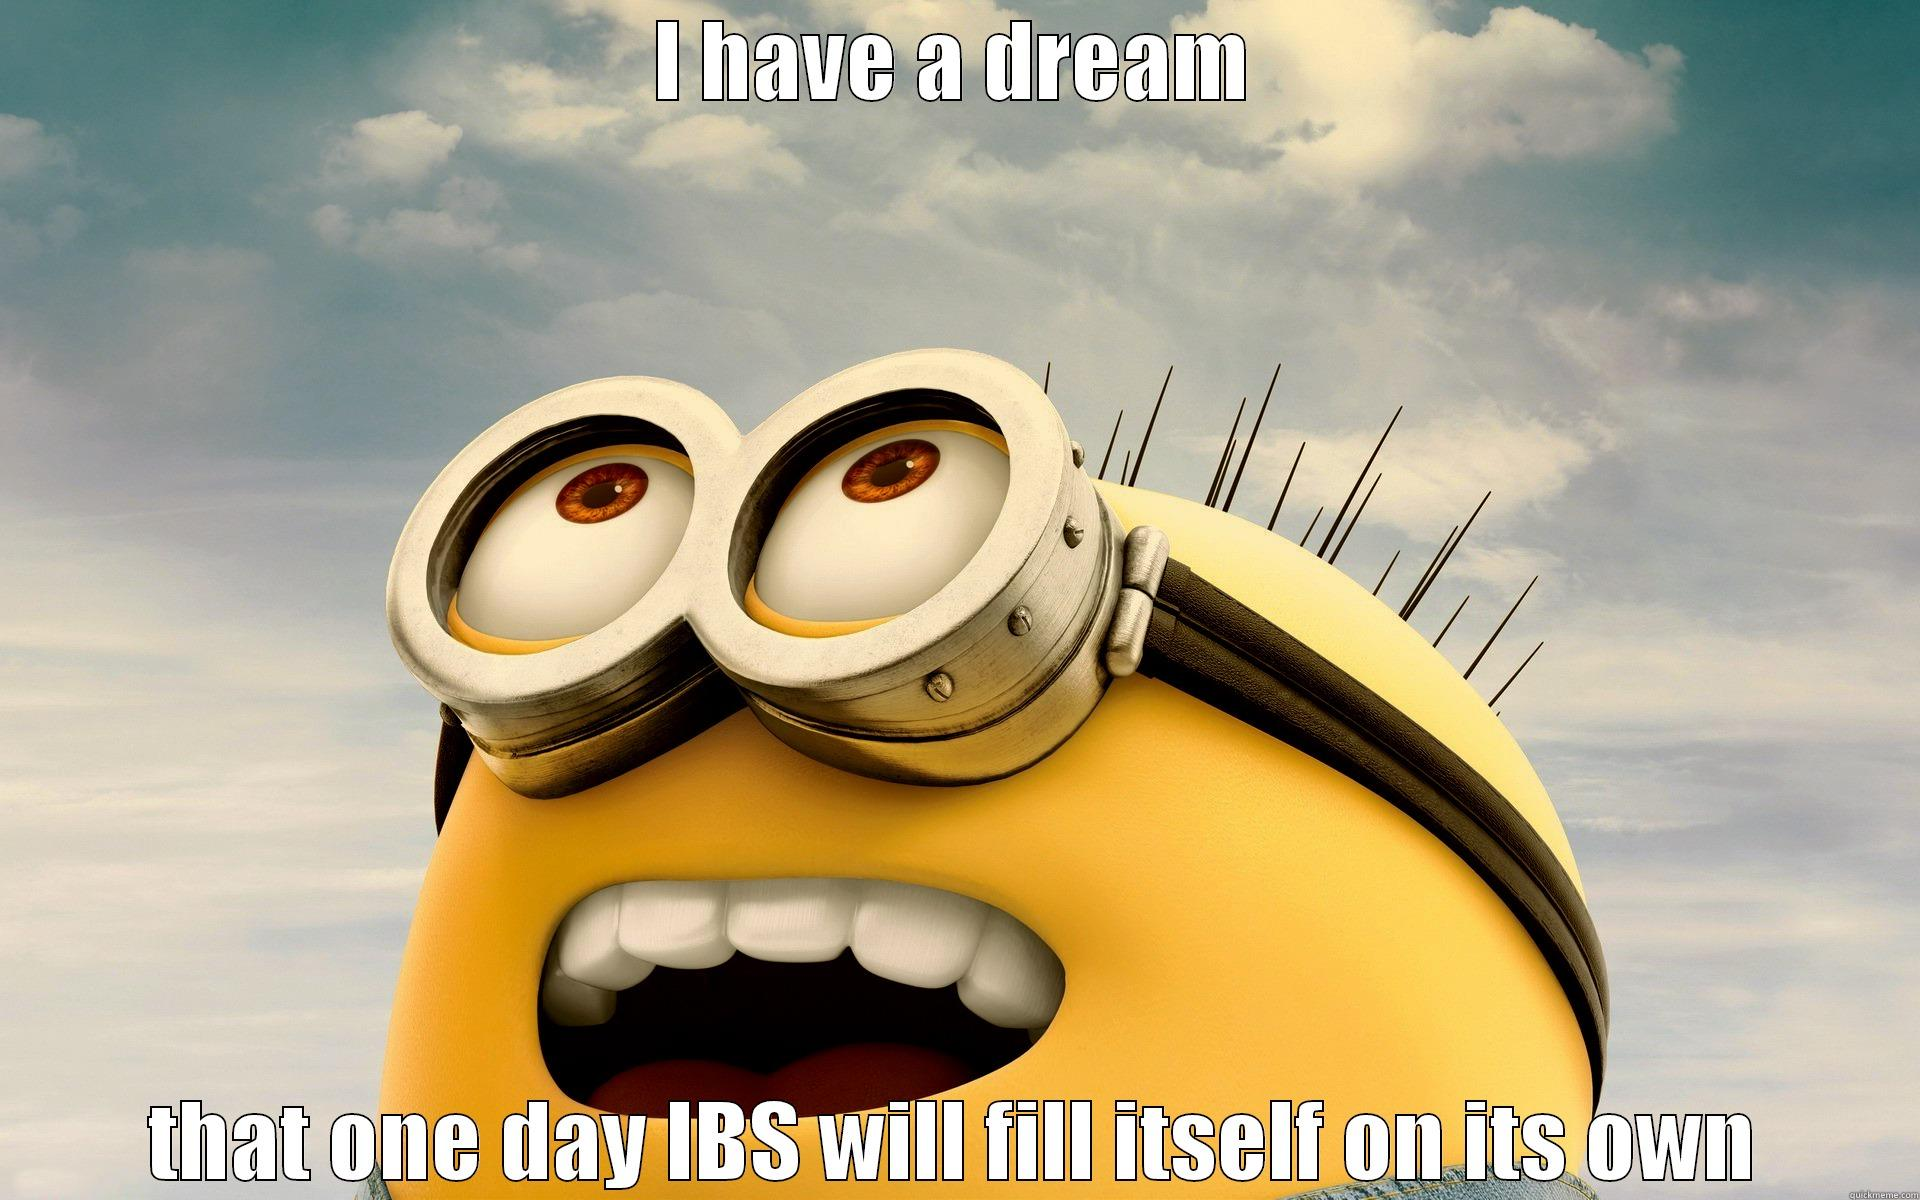 I have a dream - I HAVE A DREAM THAT ONE DAY IBS WILL FILL ITSELF ON ITS OWN Misc